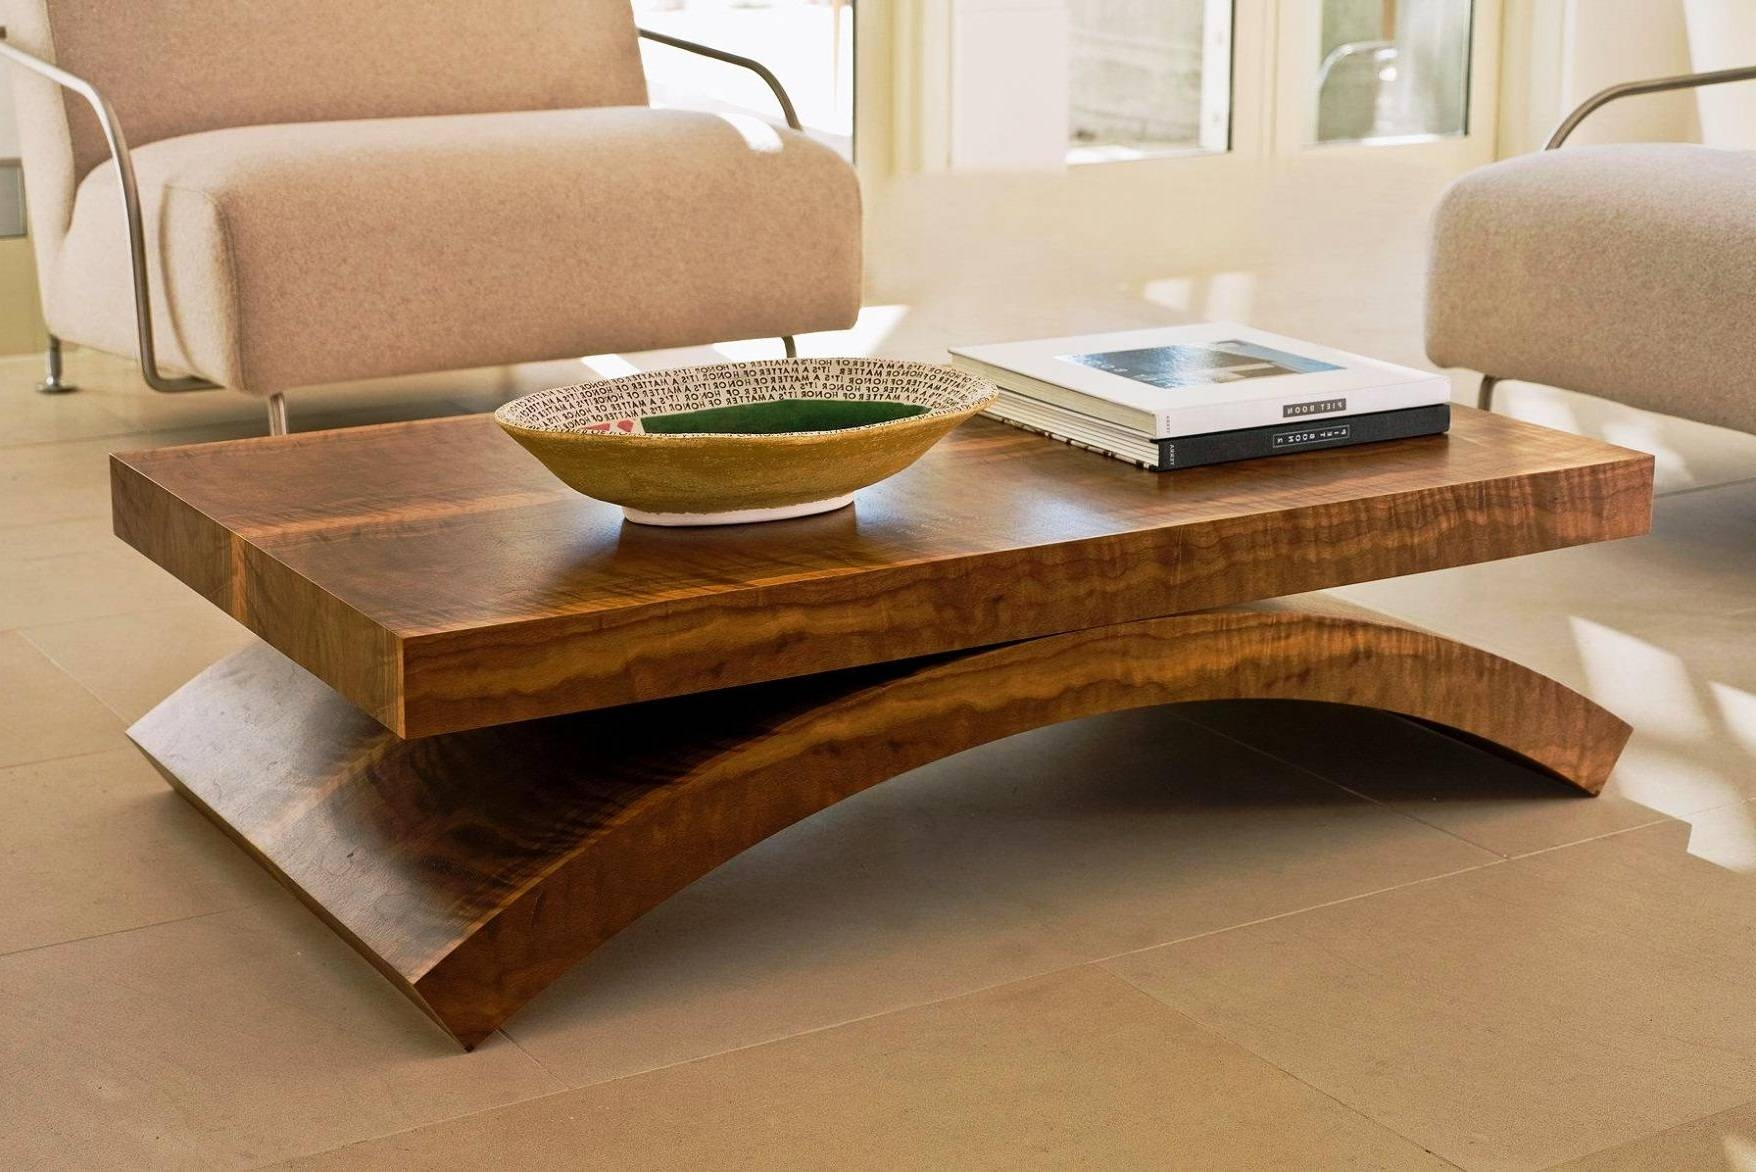 Coffee Tables: Popular Oversized Coffee Tables Designs Large With Solid Wood Coffee Tables (View 16 of 30)